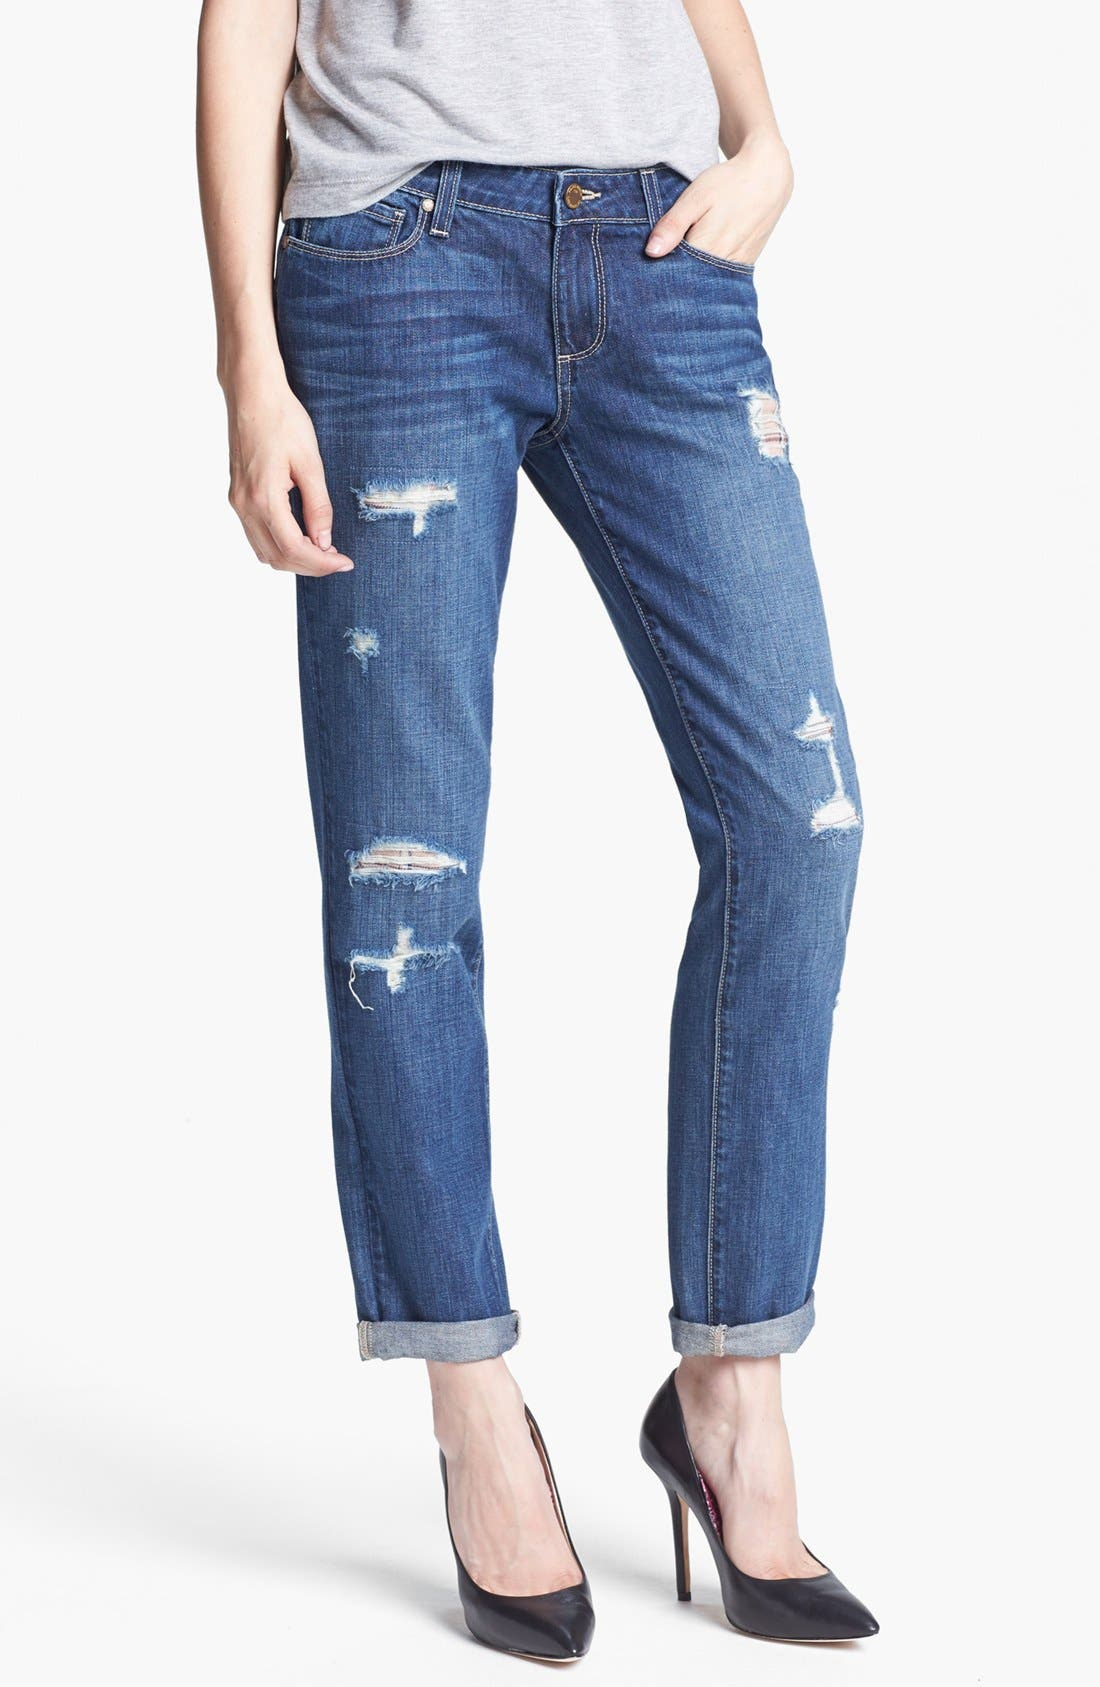 Alternate Image 1 Selected - Paige Denim 'Jimmy Jimmy' Distressed Straight Leg Jeans (Riot)